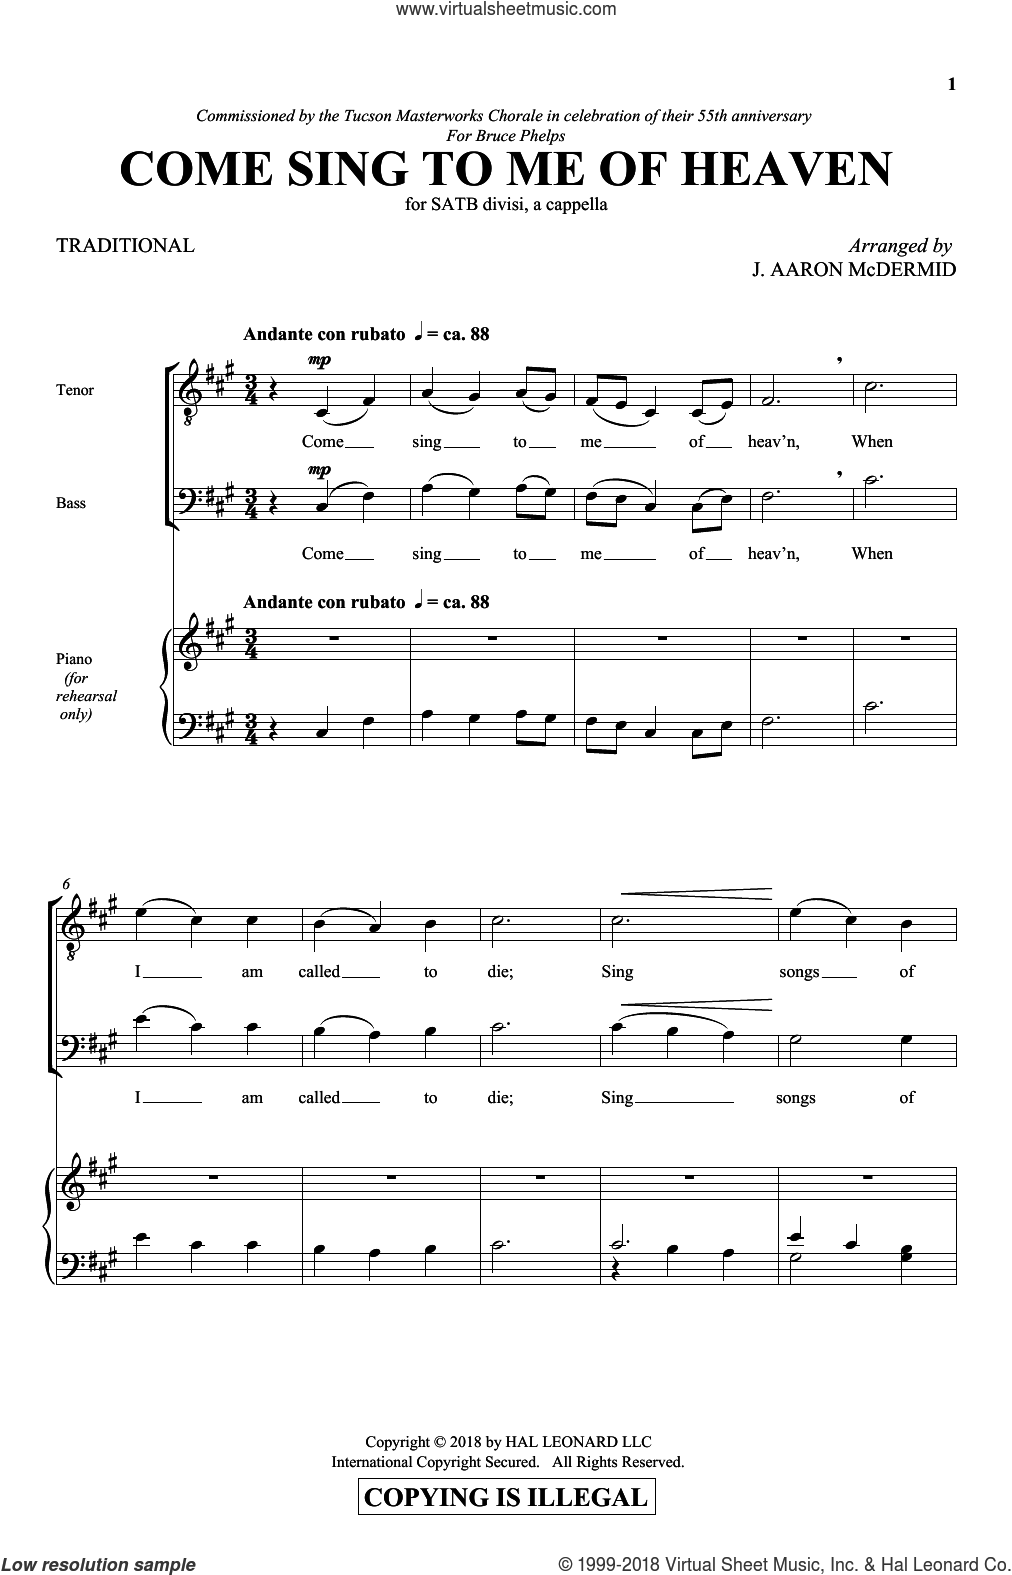 Come Sing To Me Of Heaven sheet music for choir (SATB: soprano, alto, tenor, bass) by J. Aaron McDermid and Miscellaneous, intermediate skill level